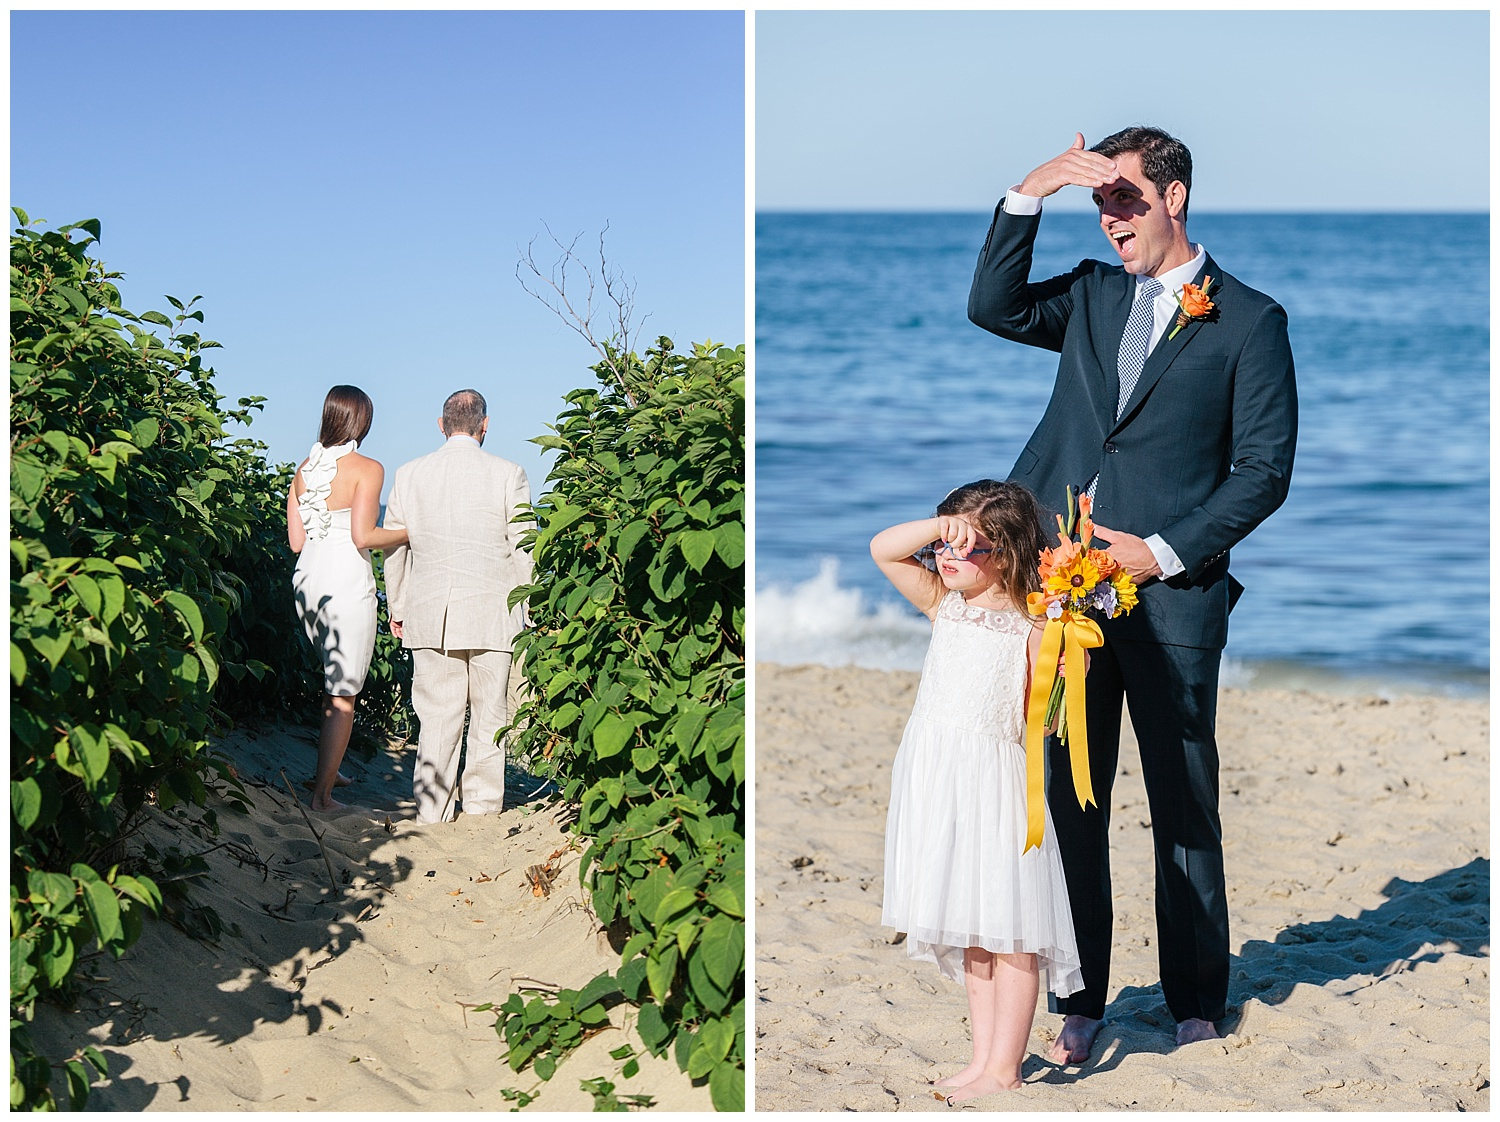 emily-belson-photography-nantucket-elopement-08.jpg